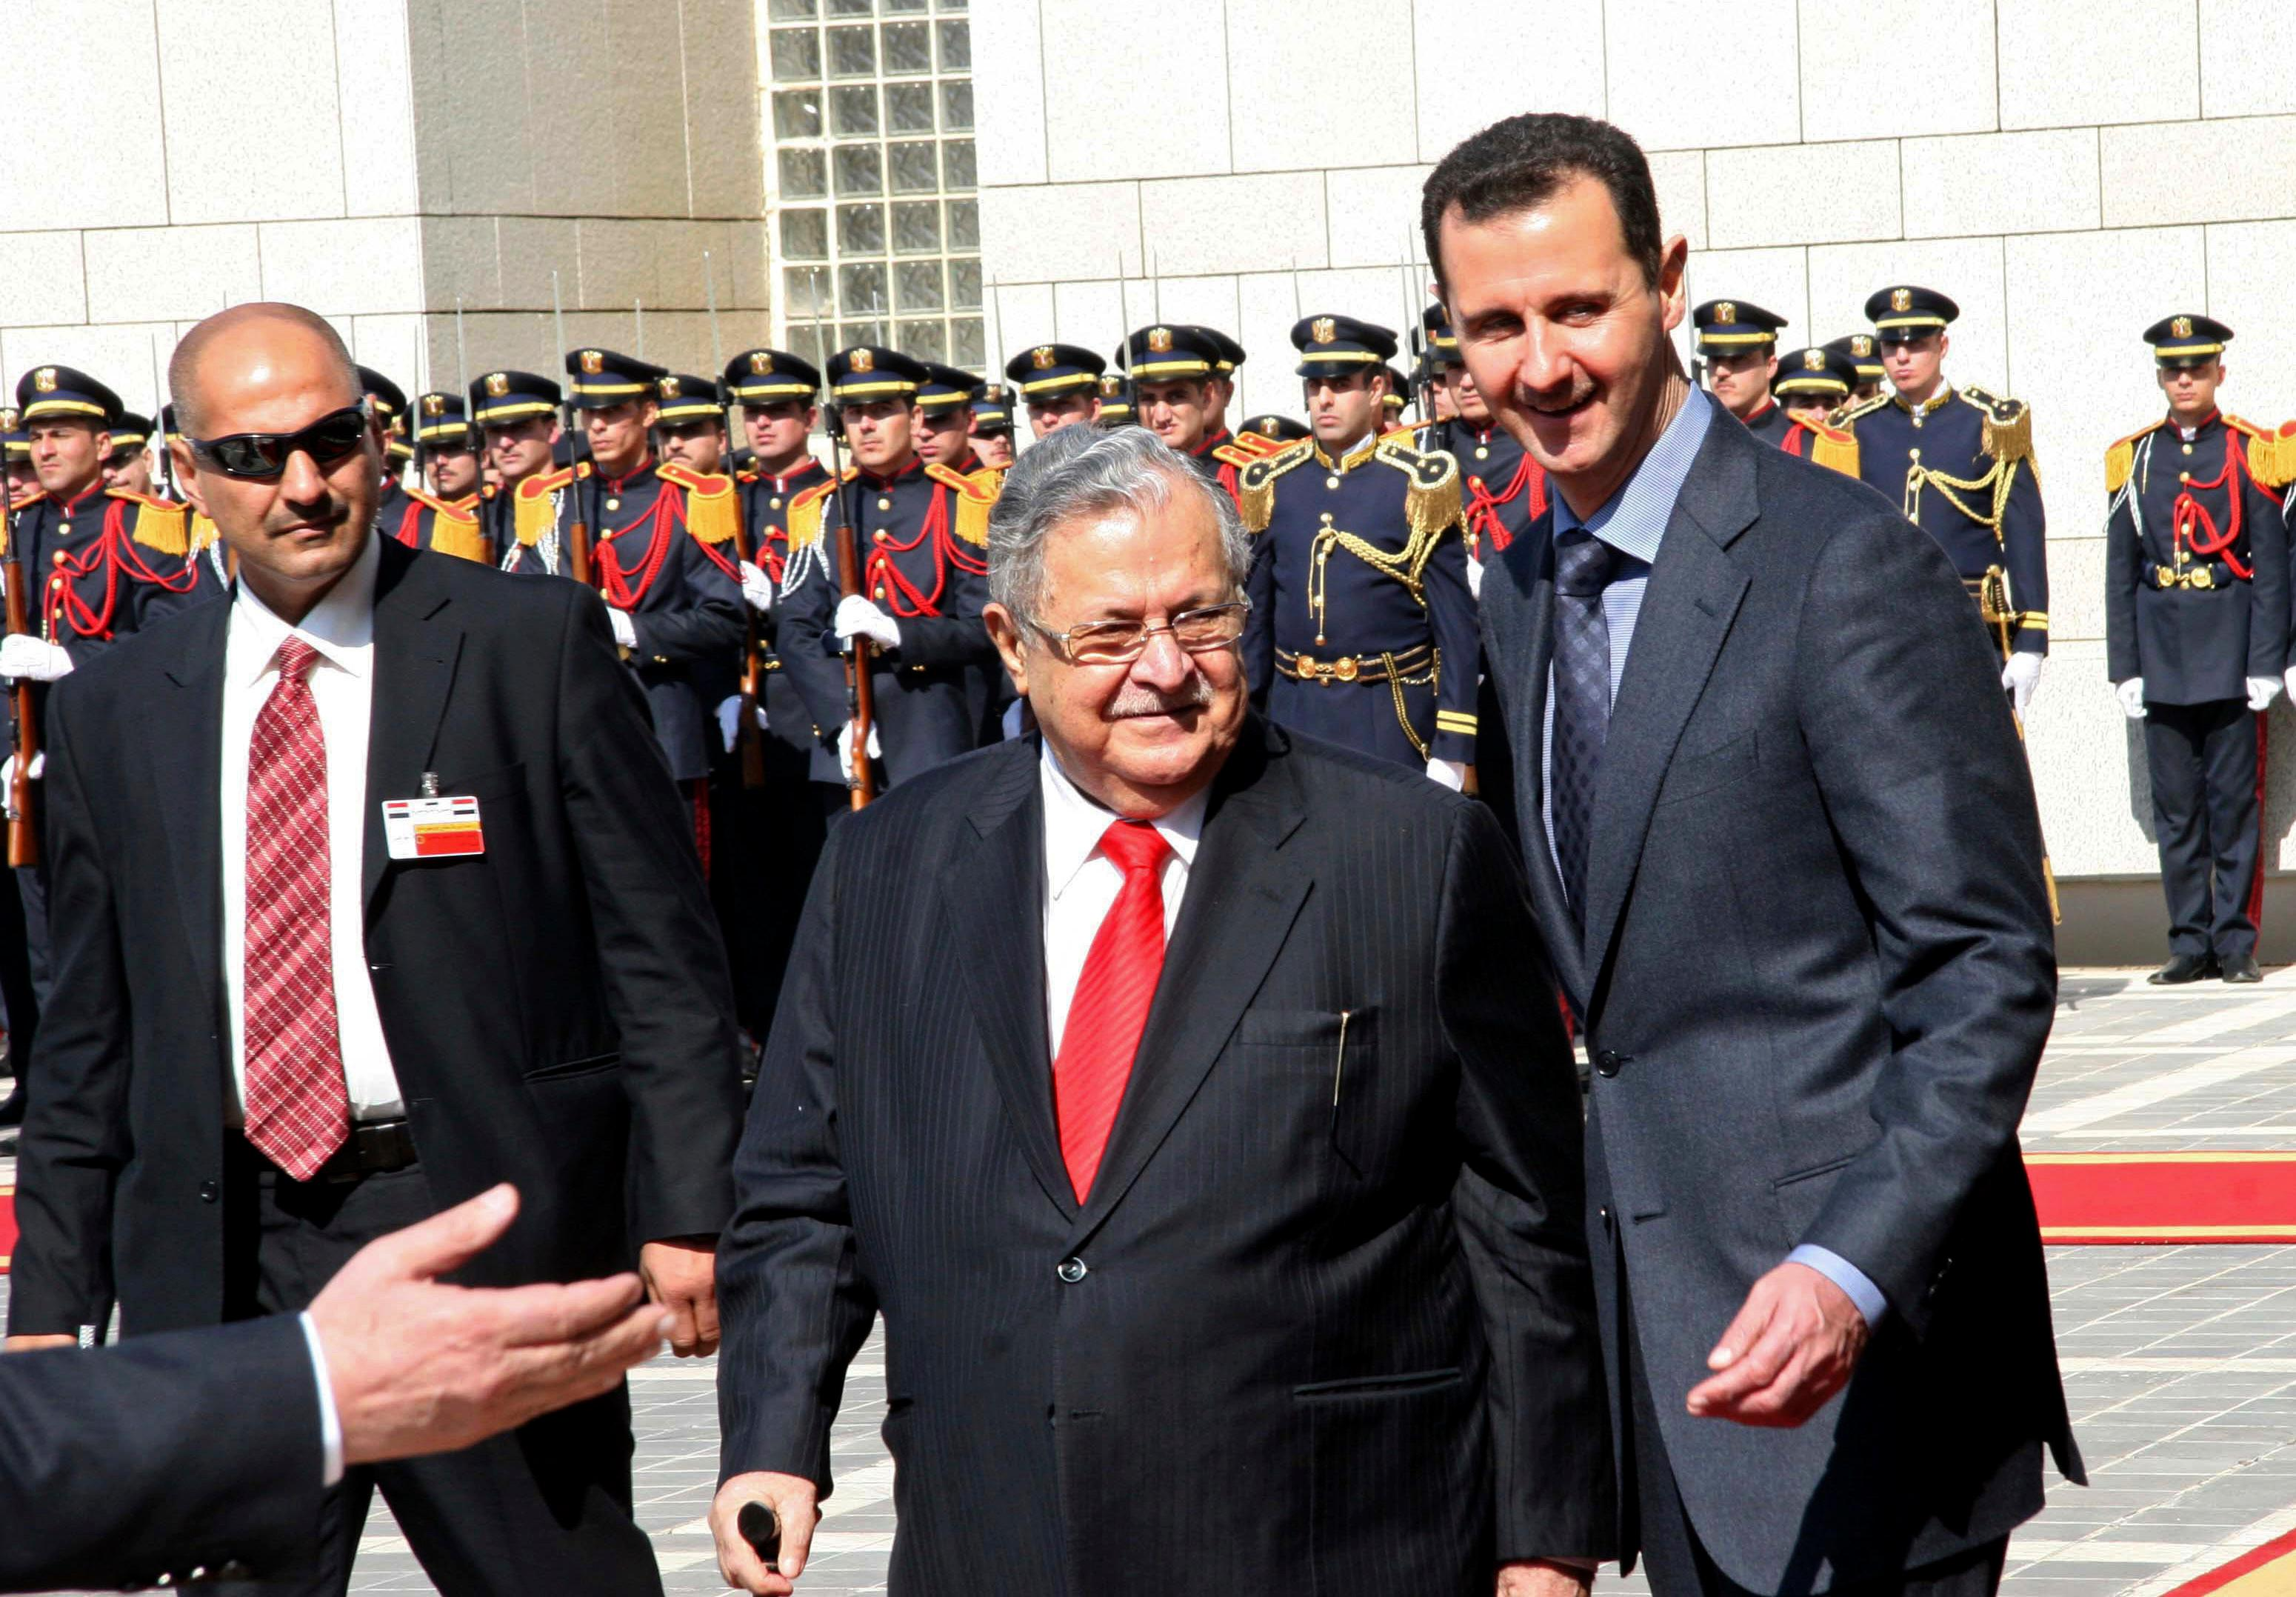 FILE - In this Feb. 12, 2011 file photo, Syrian President Bashar Assad, right, receives his Iraqi counterpart Jalal Talabani, center, upon his arrival at al-Shaab presidential palace in Damascus, Syria. Talabani, a lifelong fighter for Iraq's Kurds who rose to become the country's president, presenting himself as a unifying father figure to temper the potentially explosive hatreds among Kurds, Shiites and Sunnis has died in a Berlin hospital at the age of 83. (AP Photo/Bassem Tellawi, File)